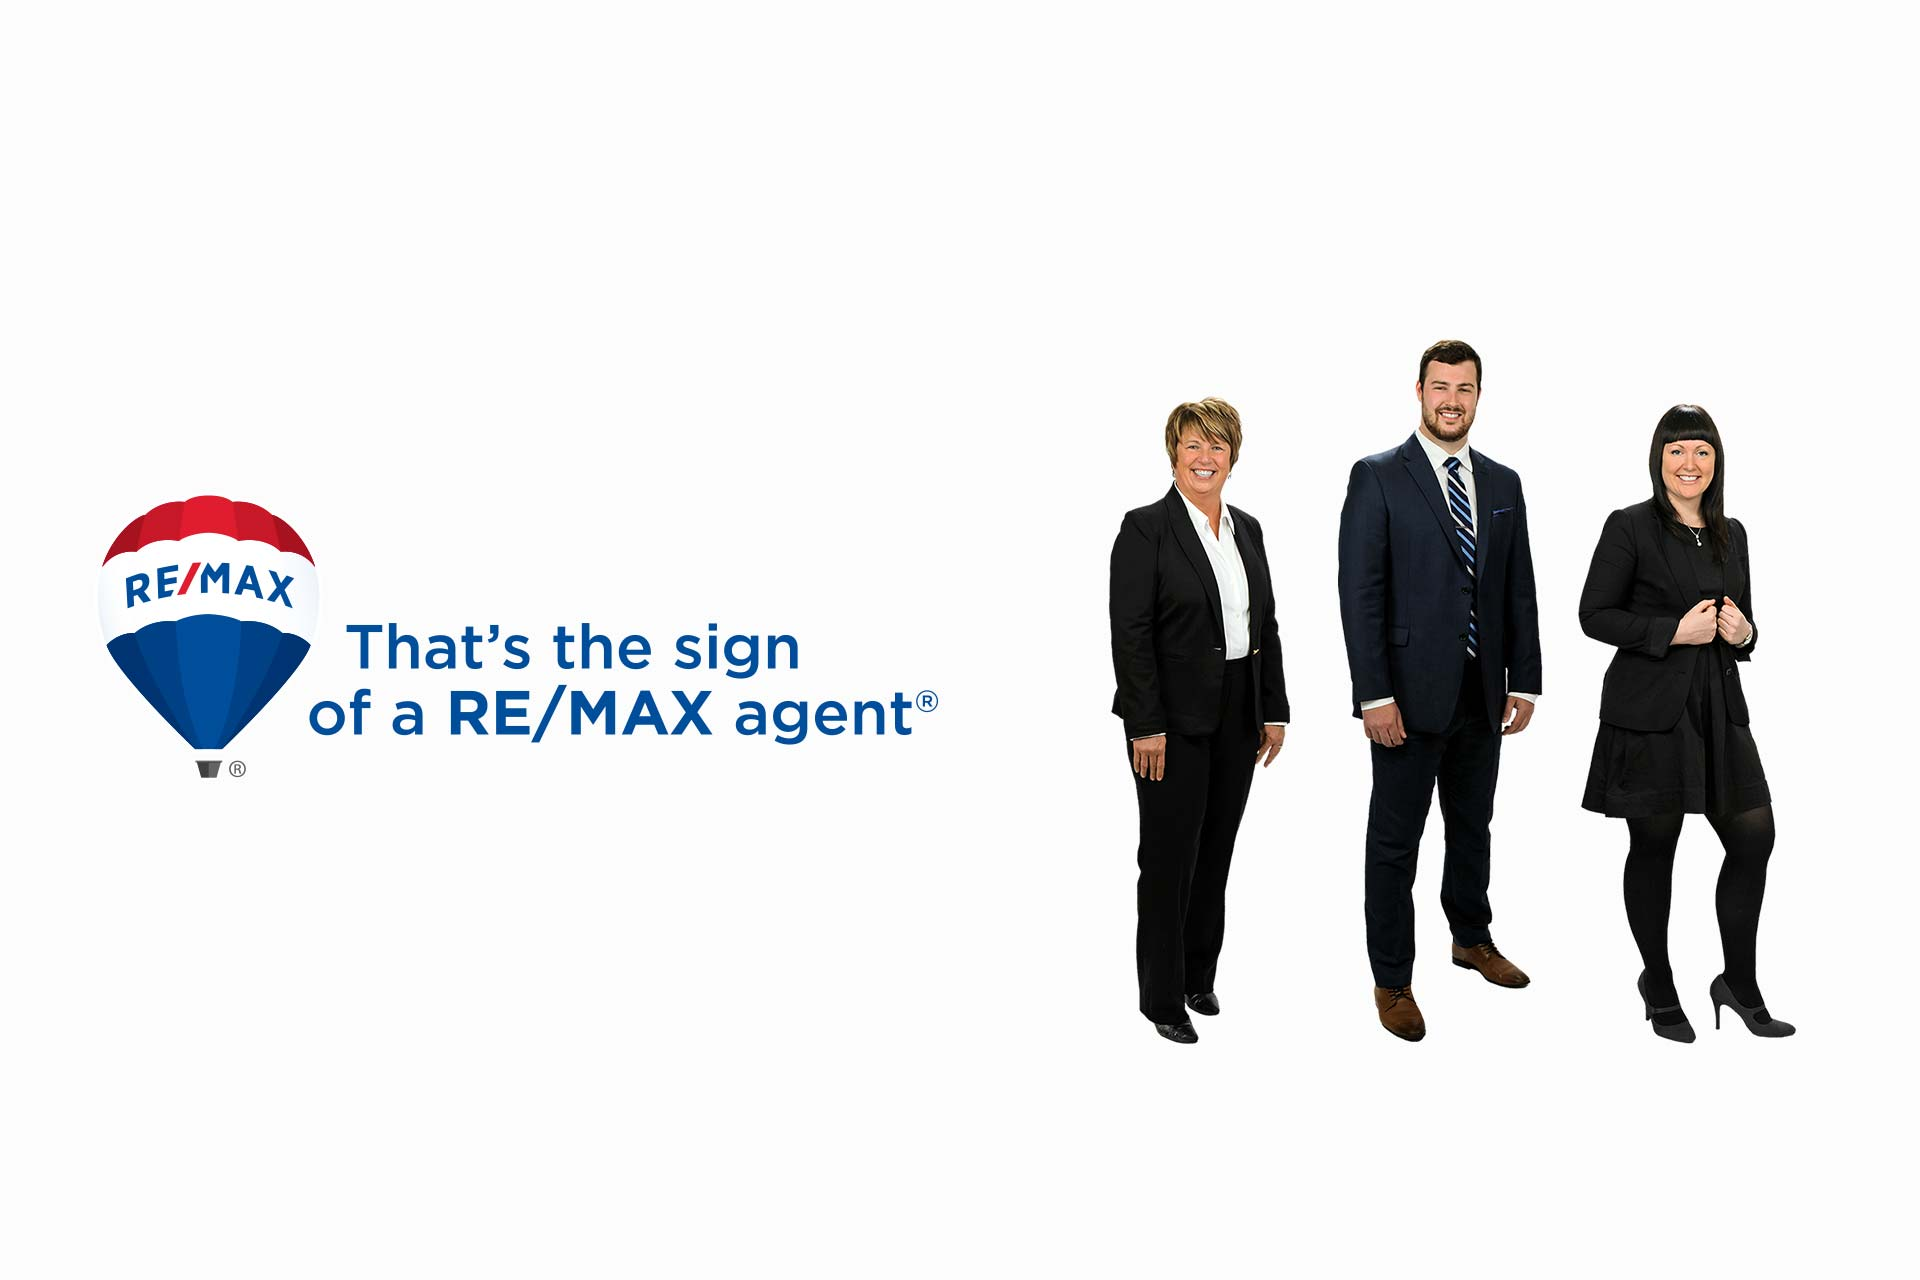 REMAX Plus Realty Agents